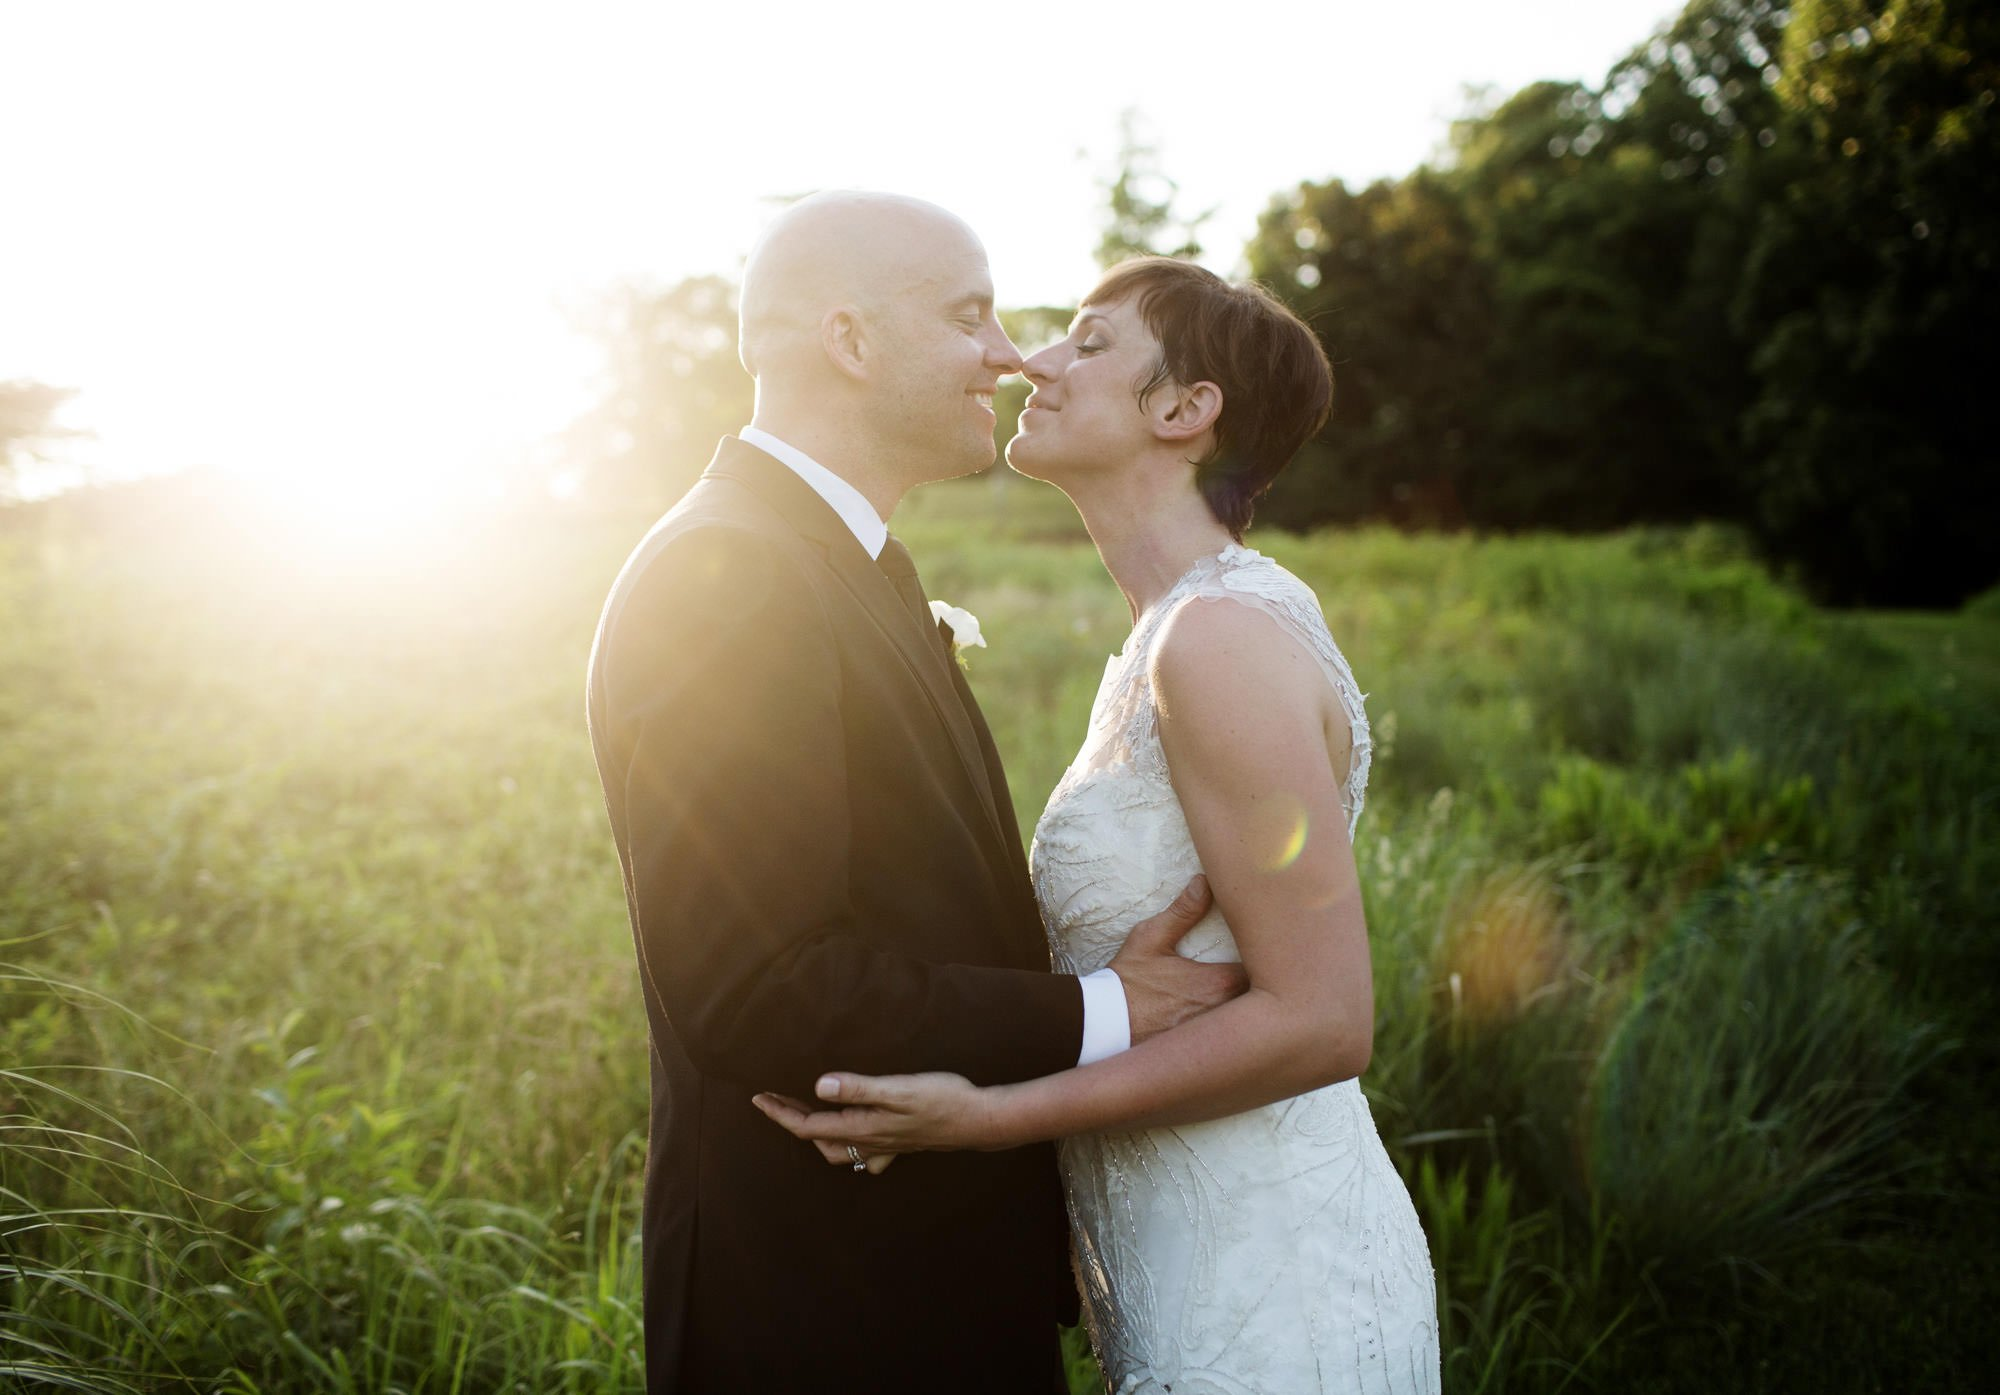 The bride and groom kiss during sunset on their River Farm wedding day.